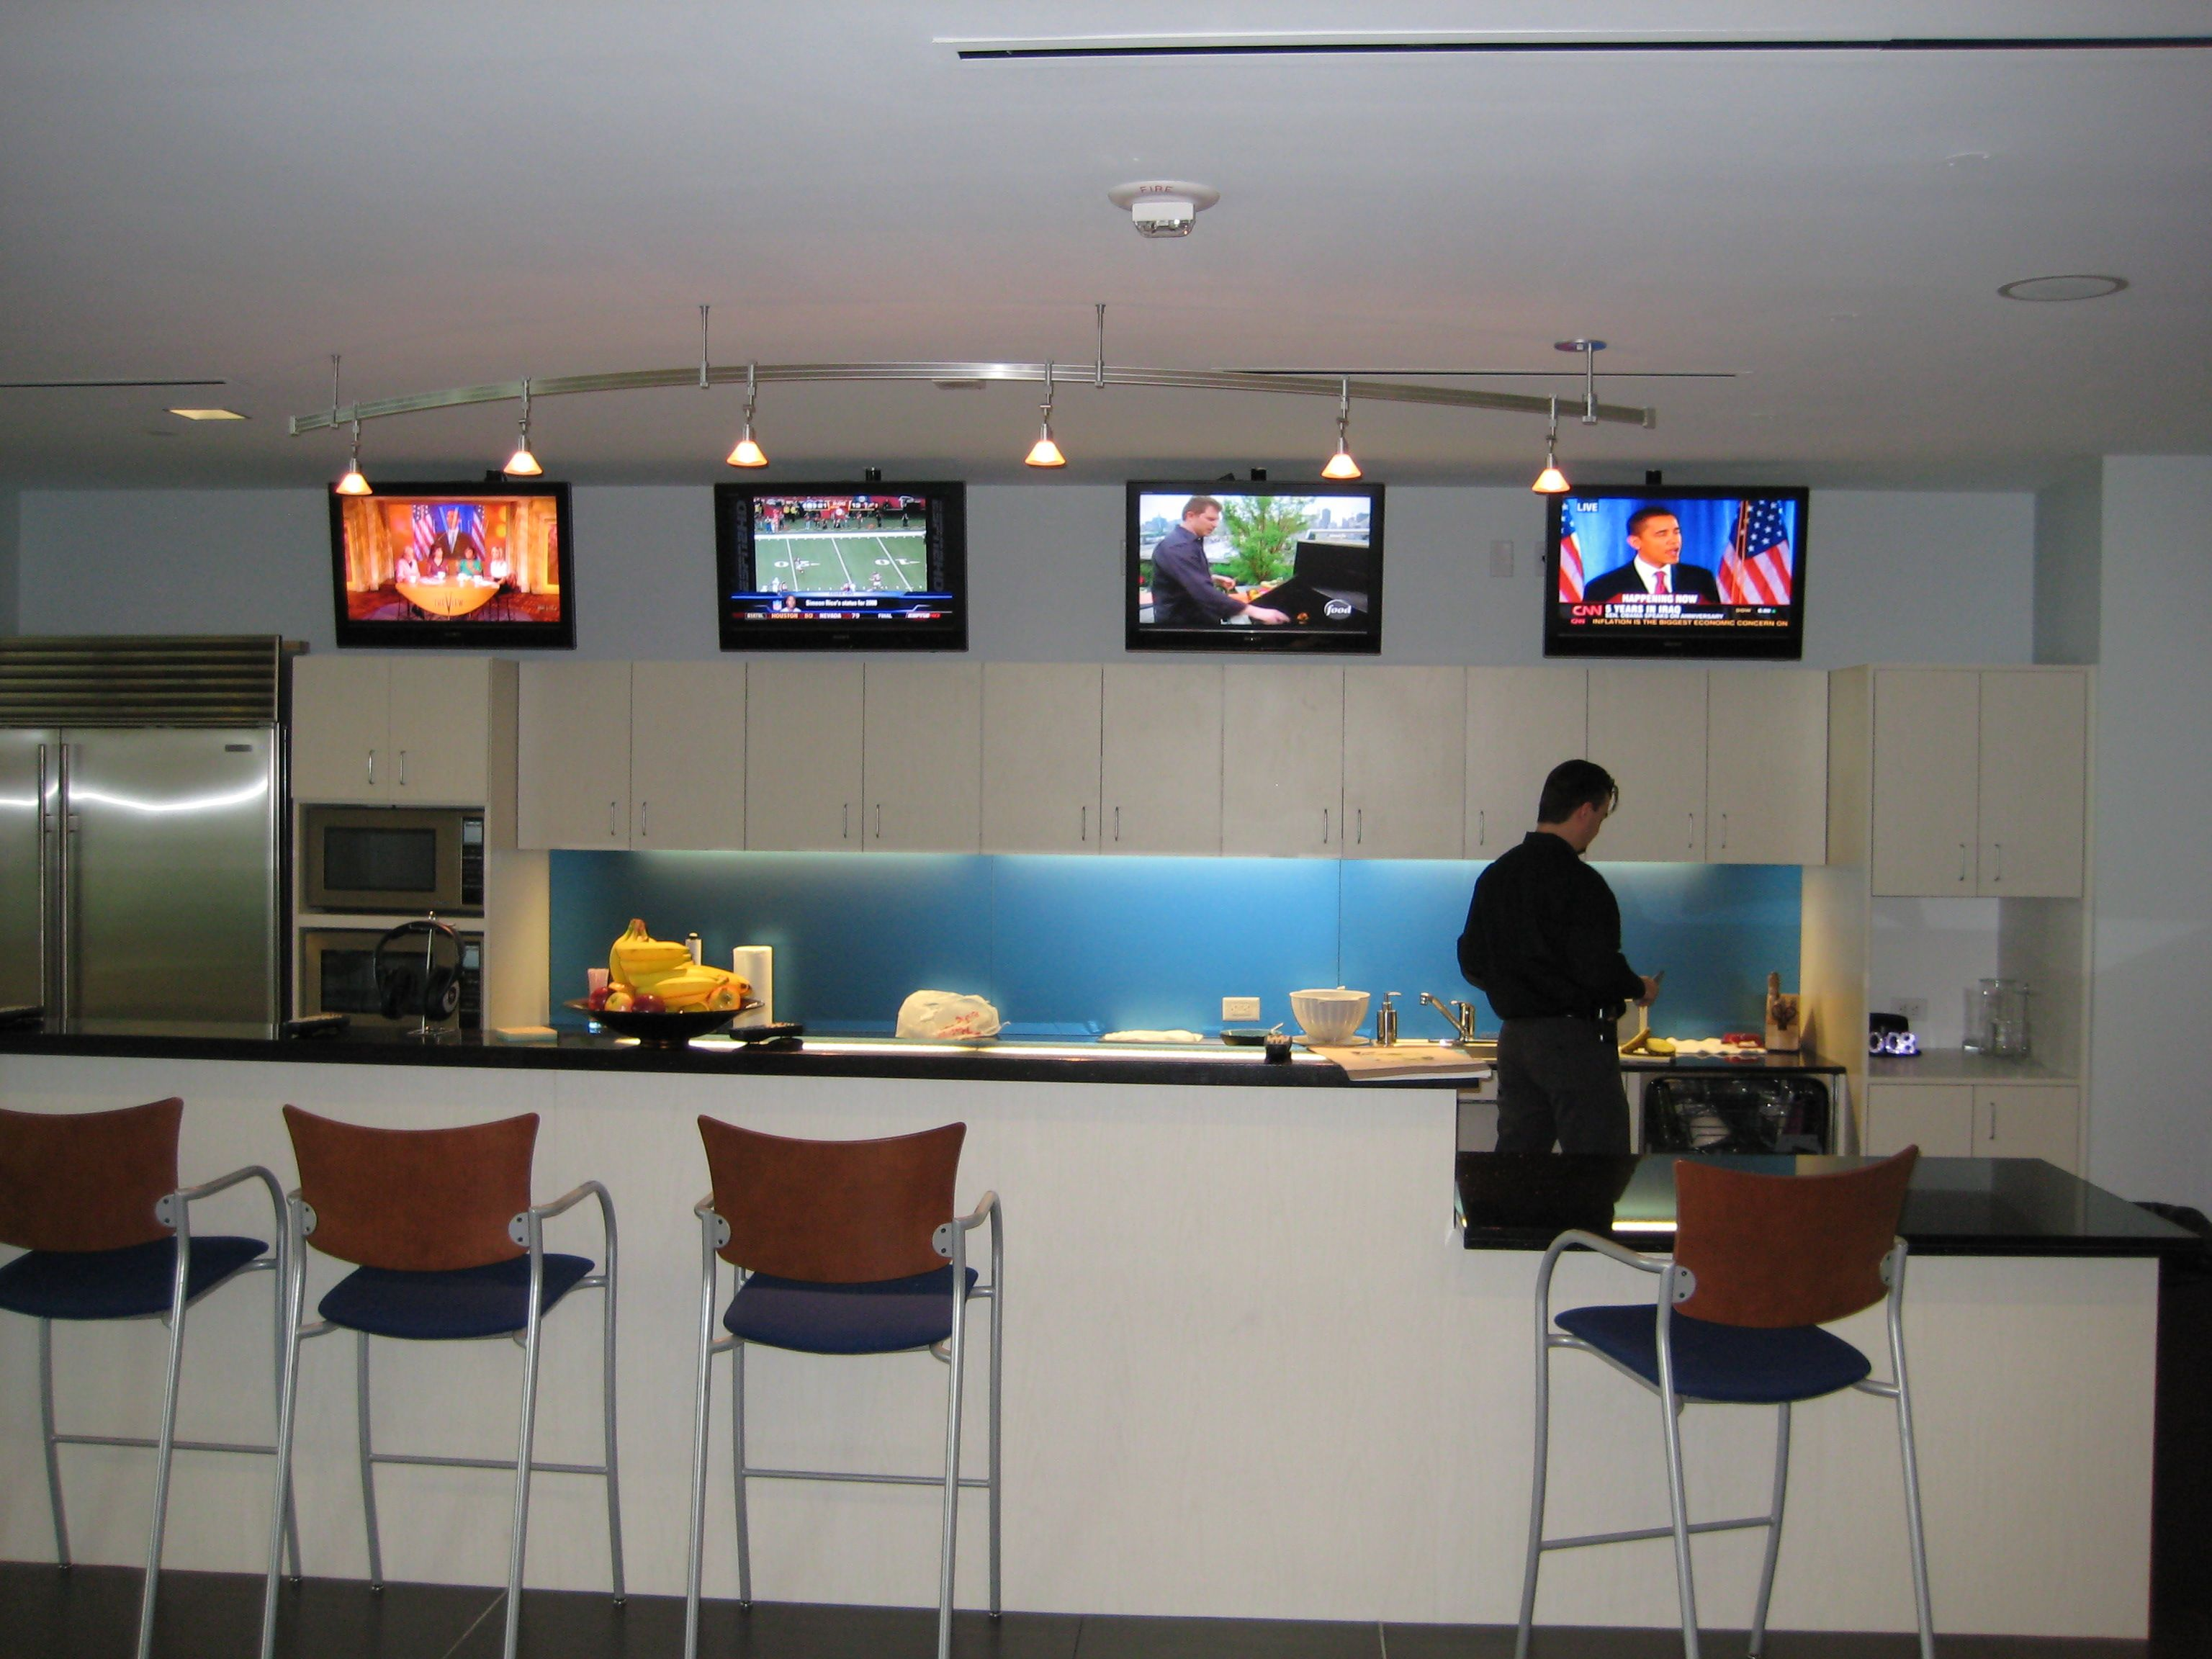 Break room design google search break room reno for Office lunch room design ideas